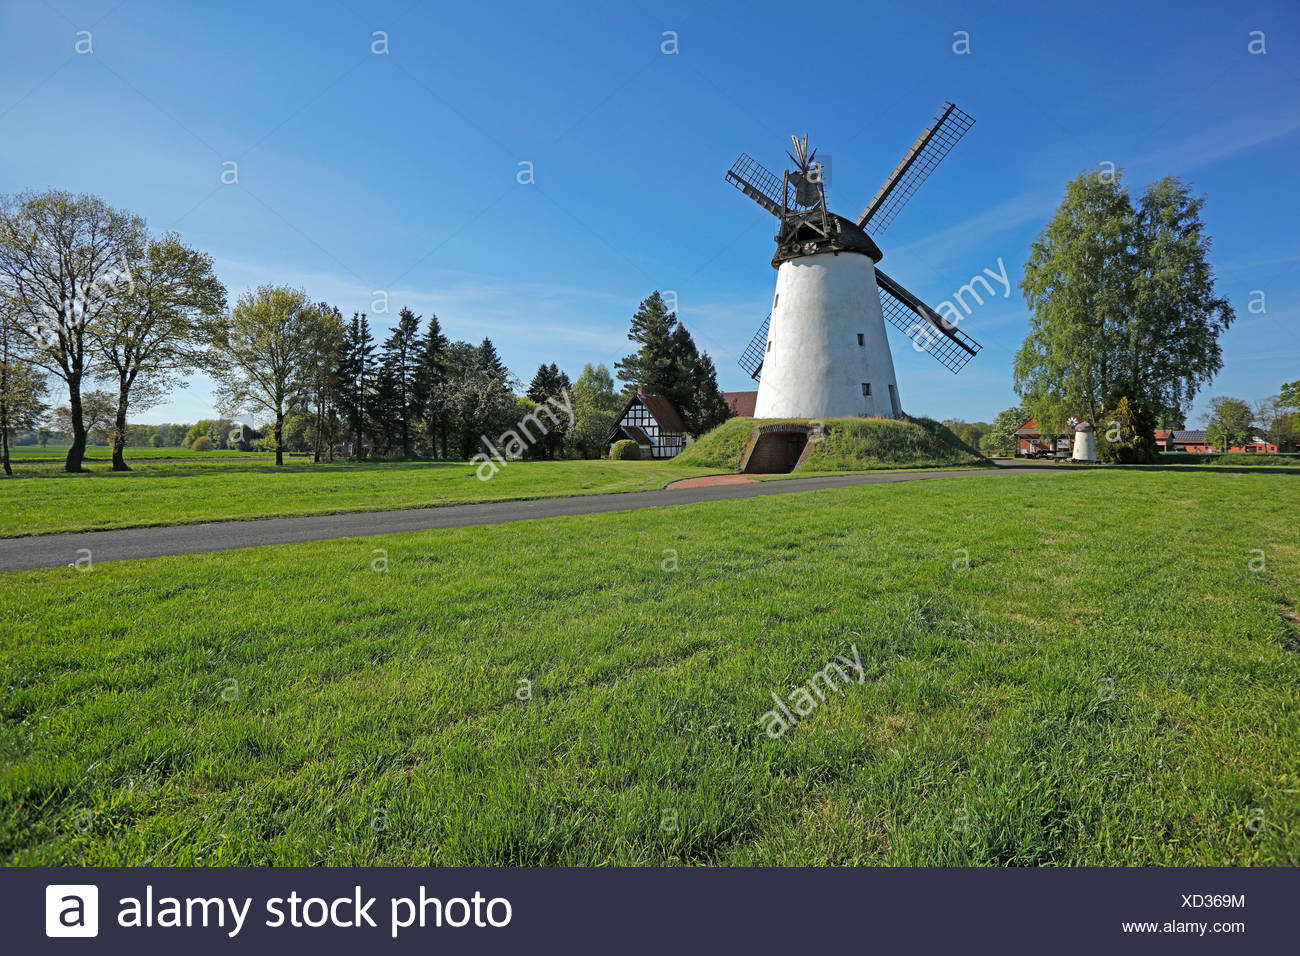 Embankment Dutchman windmill Wegholm with bakehouse and oven on Westfälischen Mühlenstraße (route), Germany, Wegholm - Stock Image